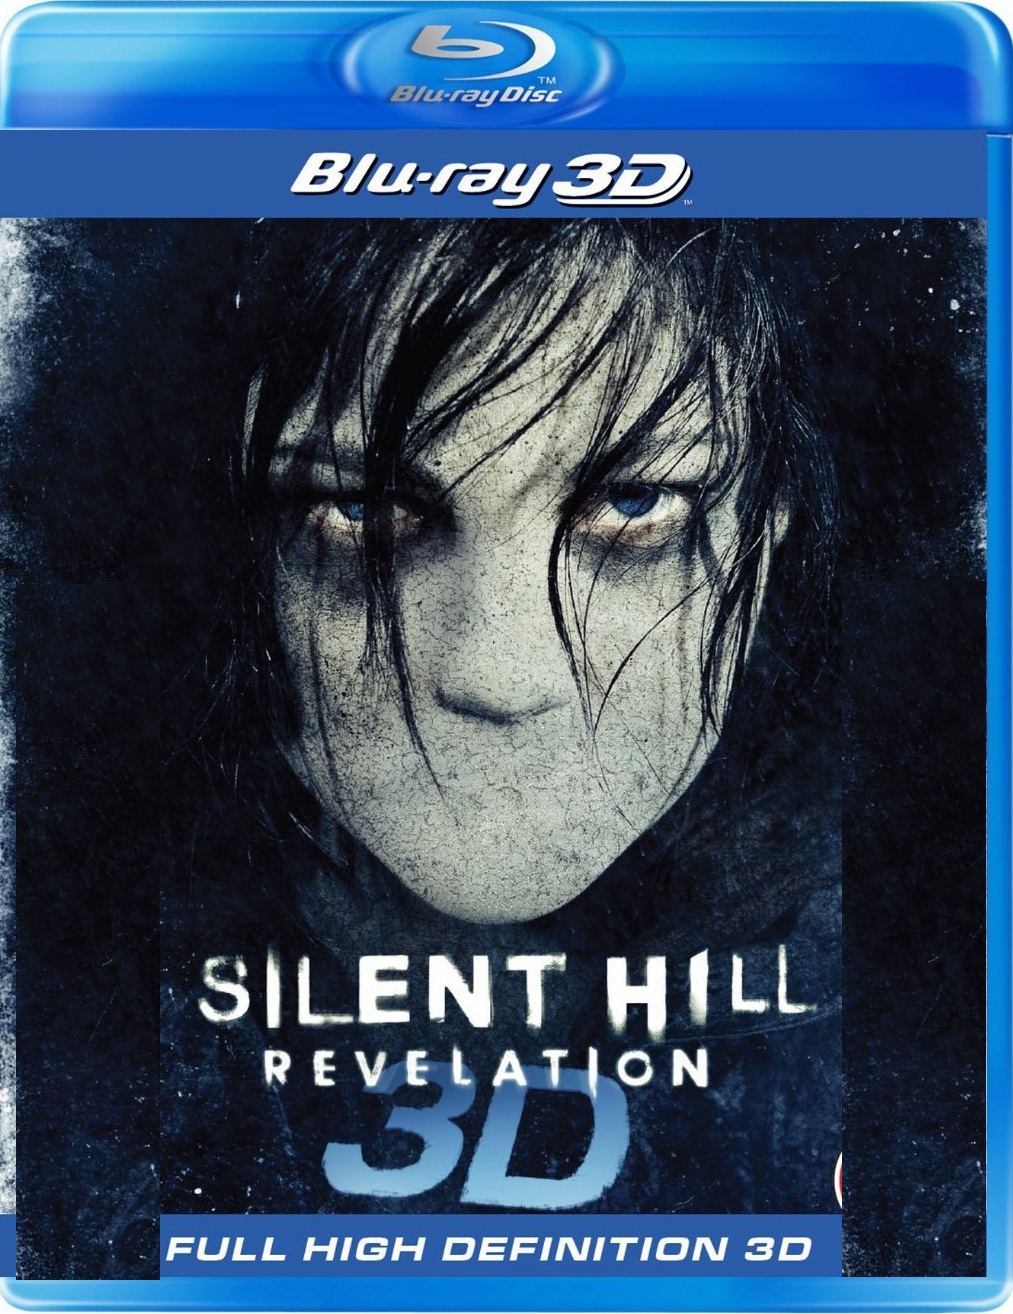 Silent Hill Revelation 3D Blu-ray (USED)